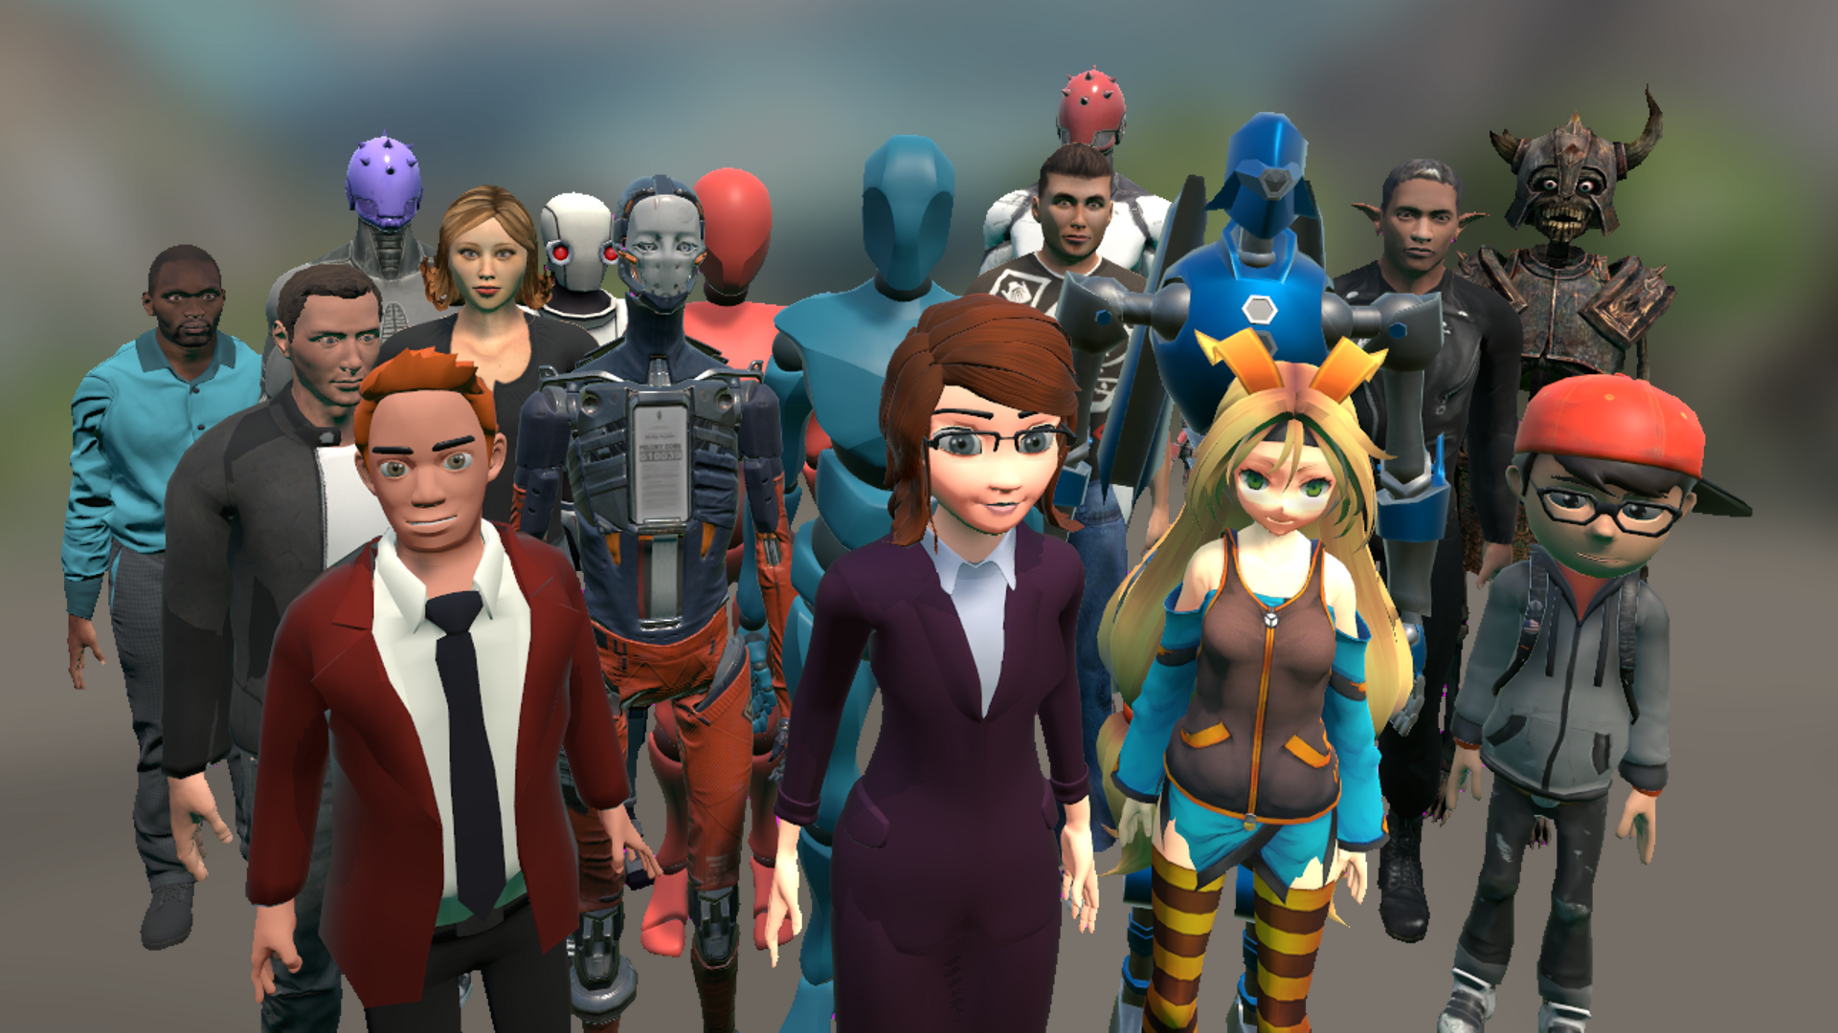 VRChat Releases Early Access Build - Virtual Reality Pop